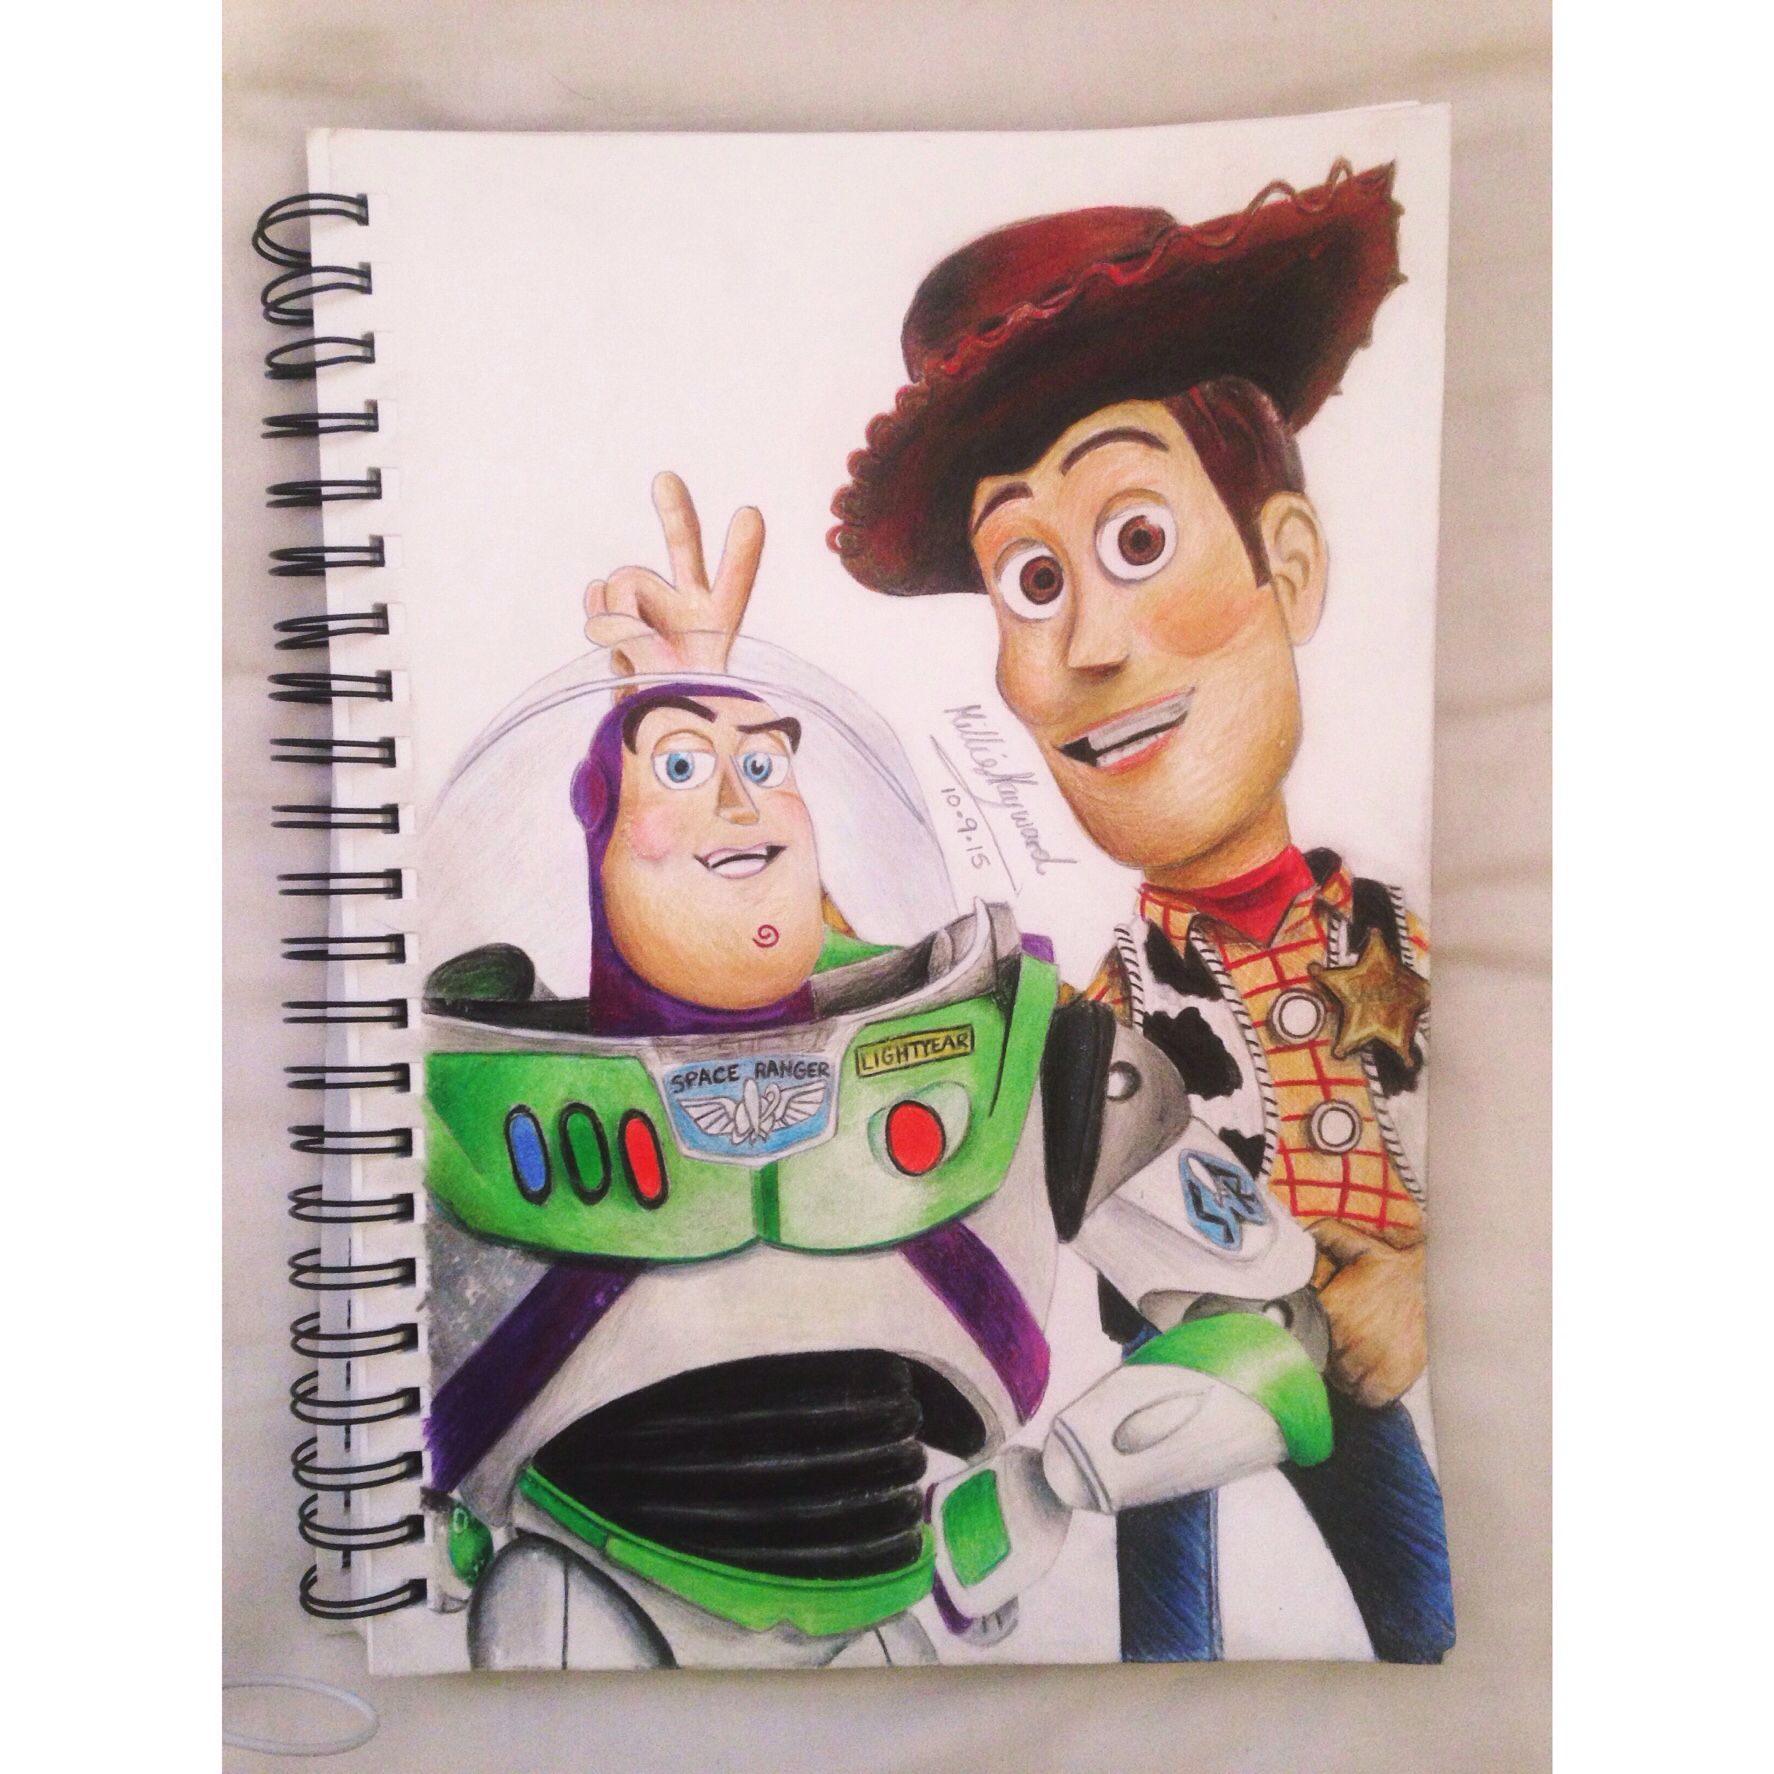 Toy Story S Woody Buzz Lightyear Free Hand Drawing Using Coloured Pencils Find On Instagram Milliehay Disney Art Drawings Disney Drawings Disney Sketches